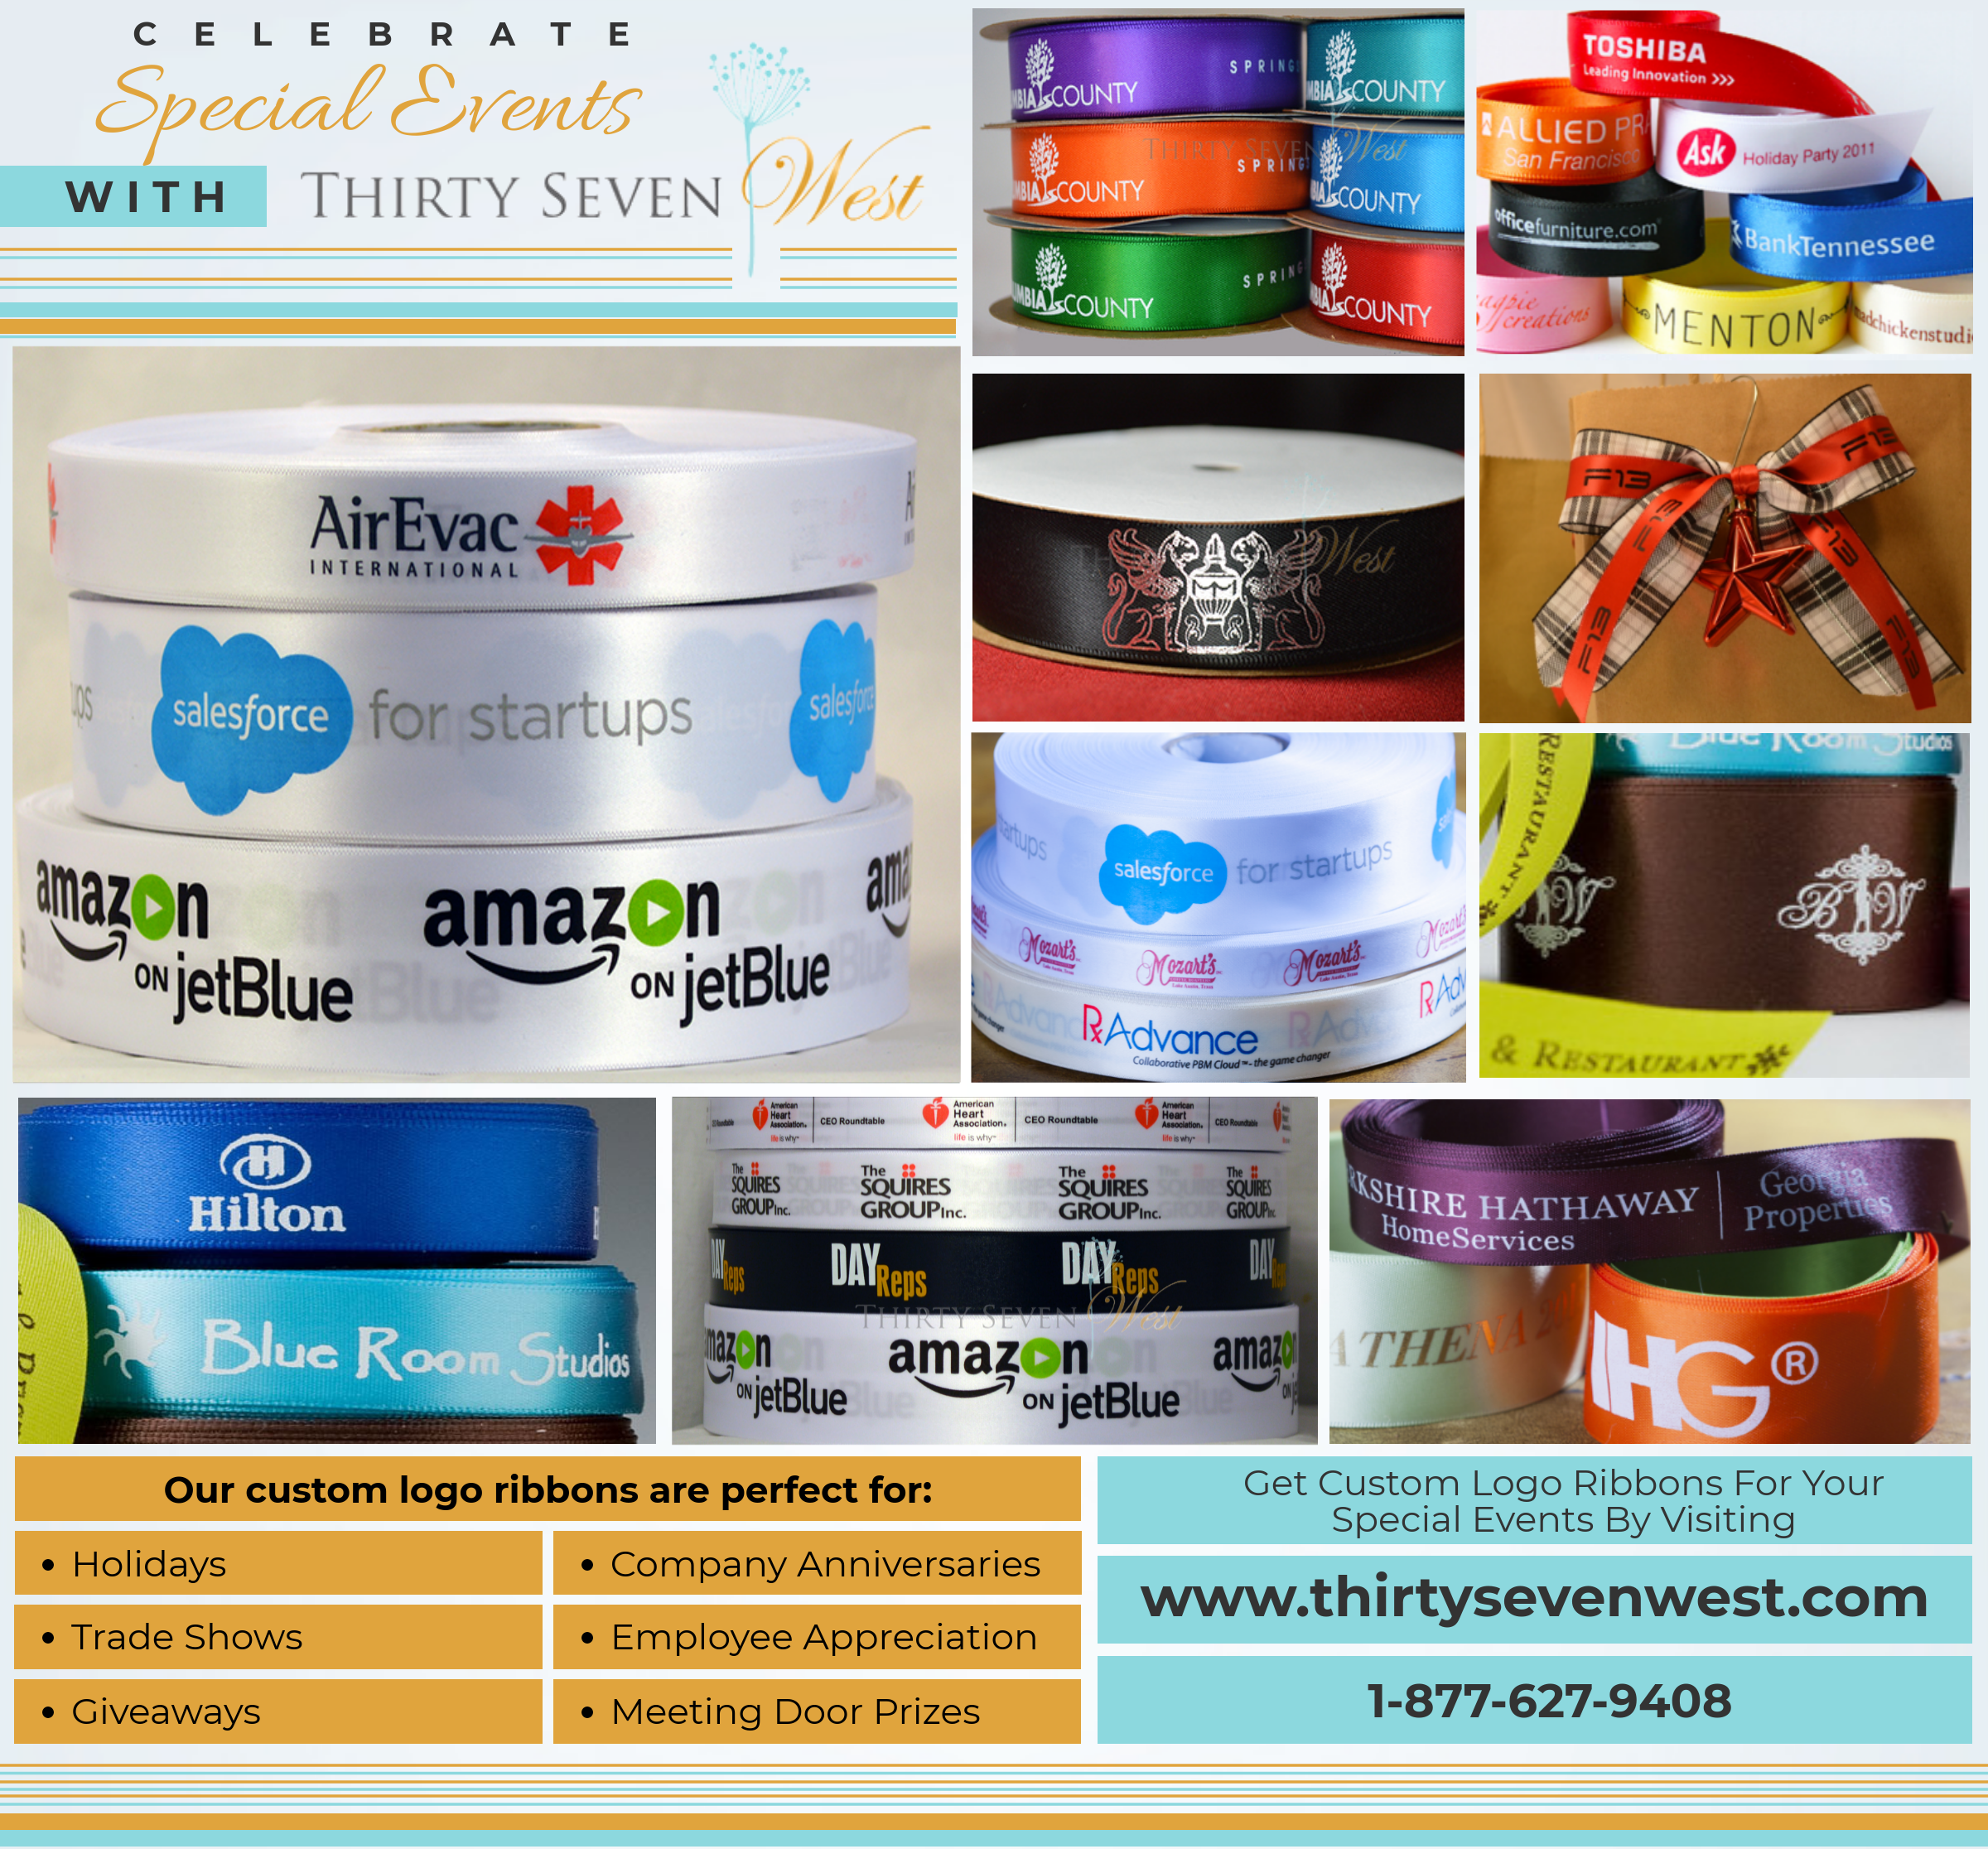 Custom Logo Ribbon with Multi color print for corporate Gift wrap, Custom Ribbon, logo Ribbon, company ribbon, company ribbon with logo, corporate ribbon, corporate ribbon with logo, Custom Ribbons For A Corporate Event, corporate event ribbon, corporate gift wrap, event ribbon with logo, multi color printed ribbon